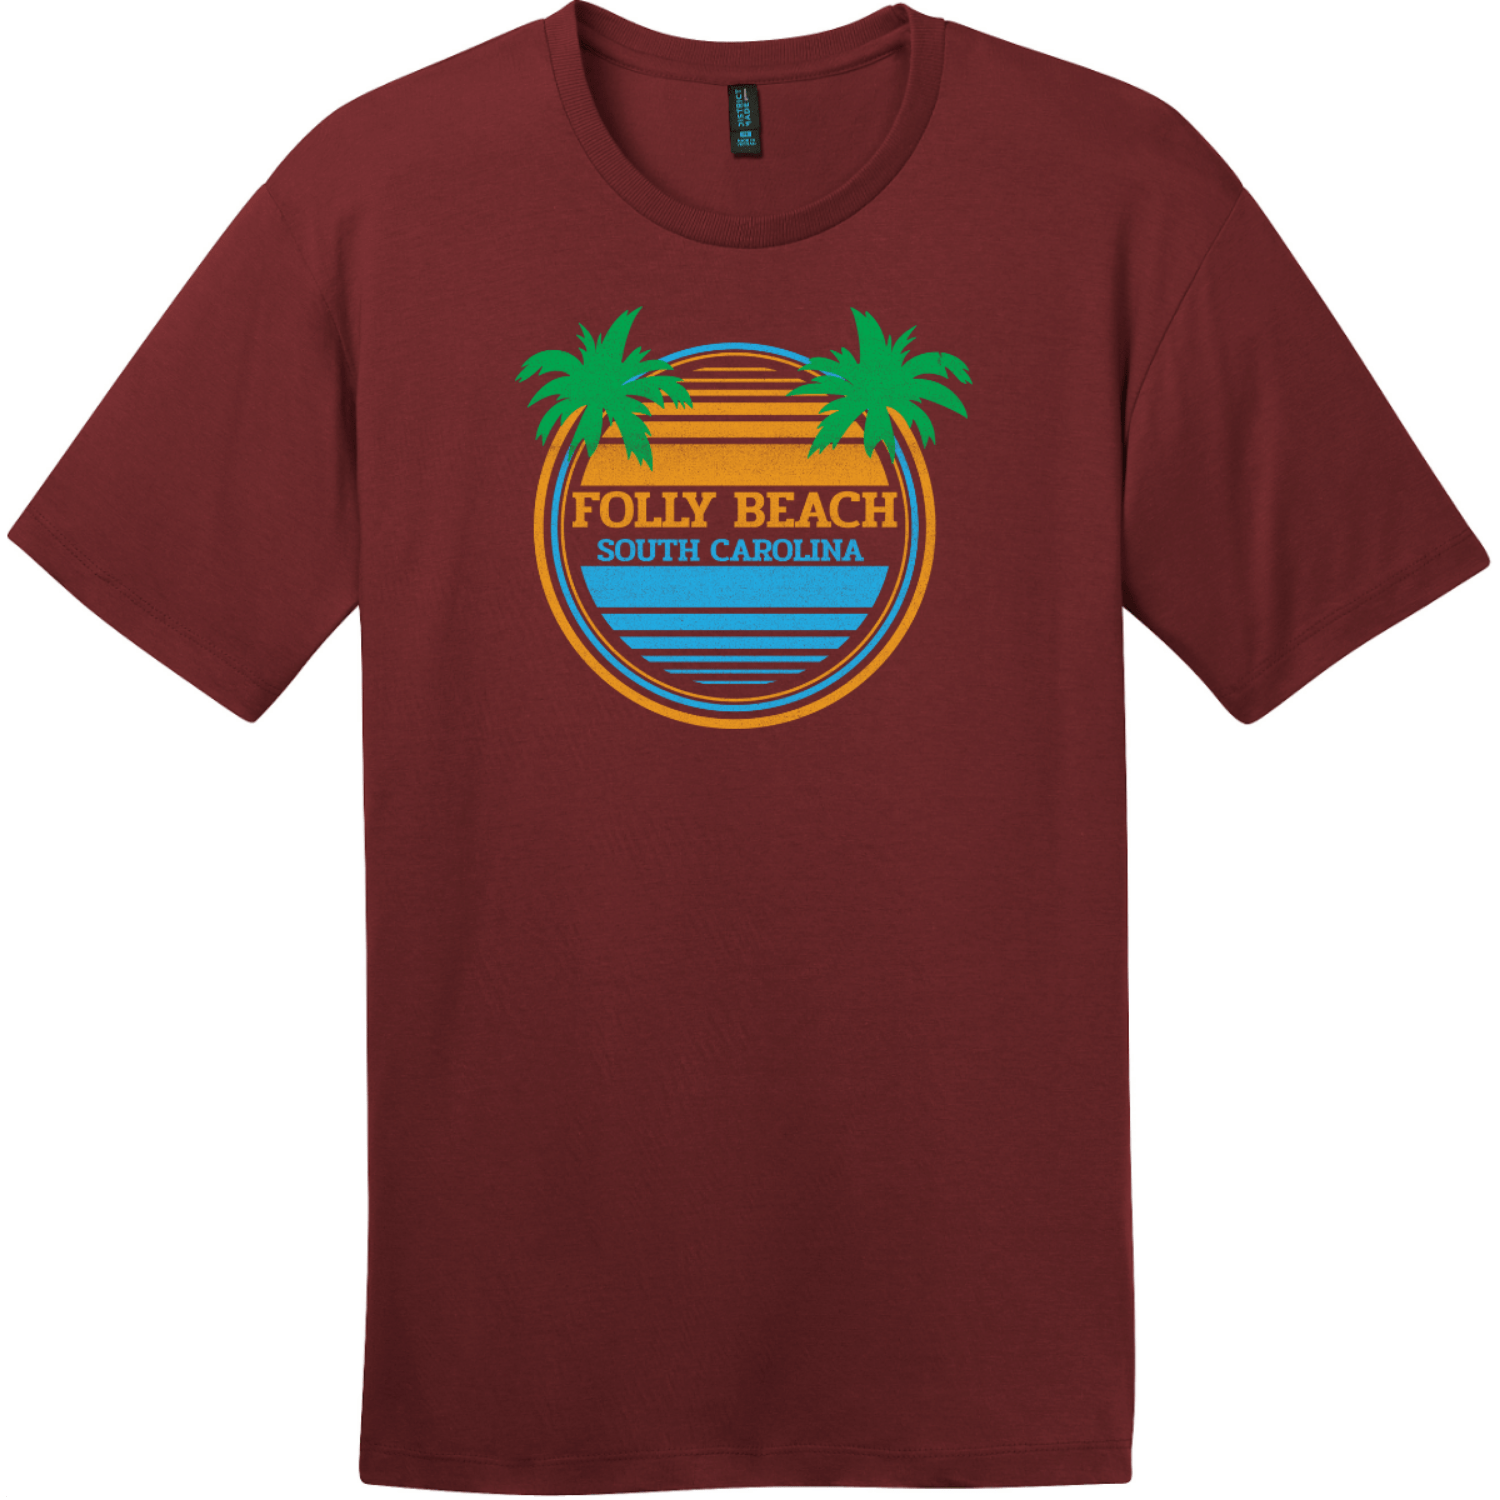 Folly Beach South Carolina Palm Trees T-Shirt Sangria District Perfect Weight Tee DT104